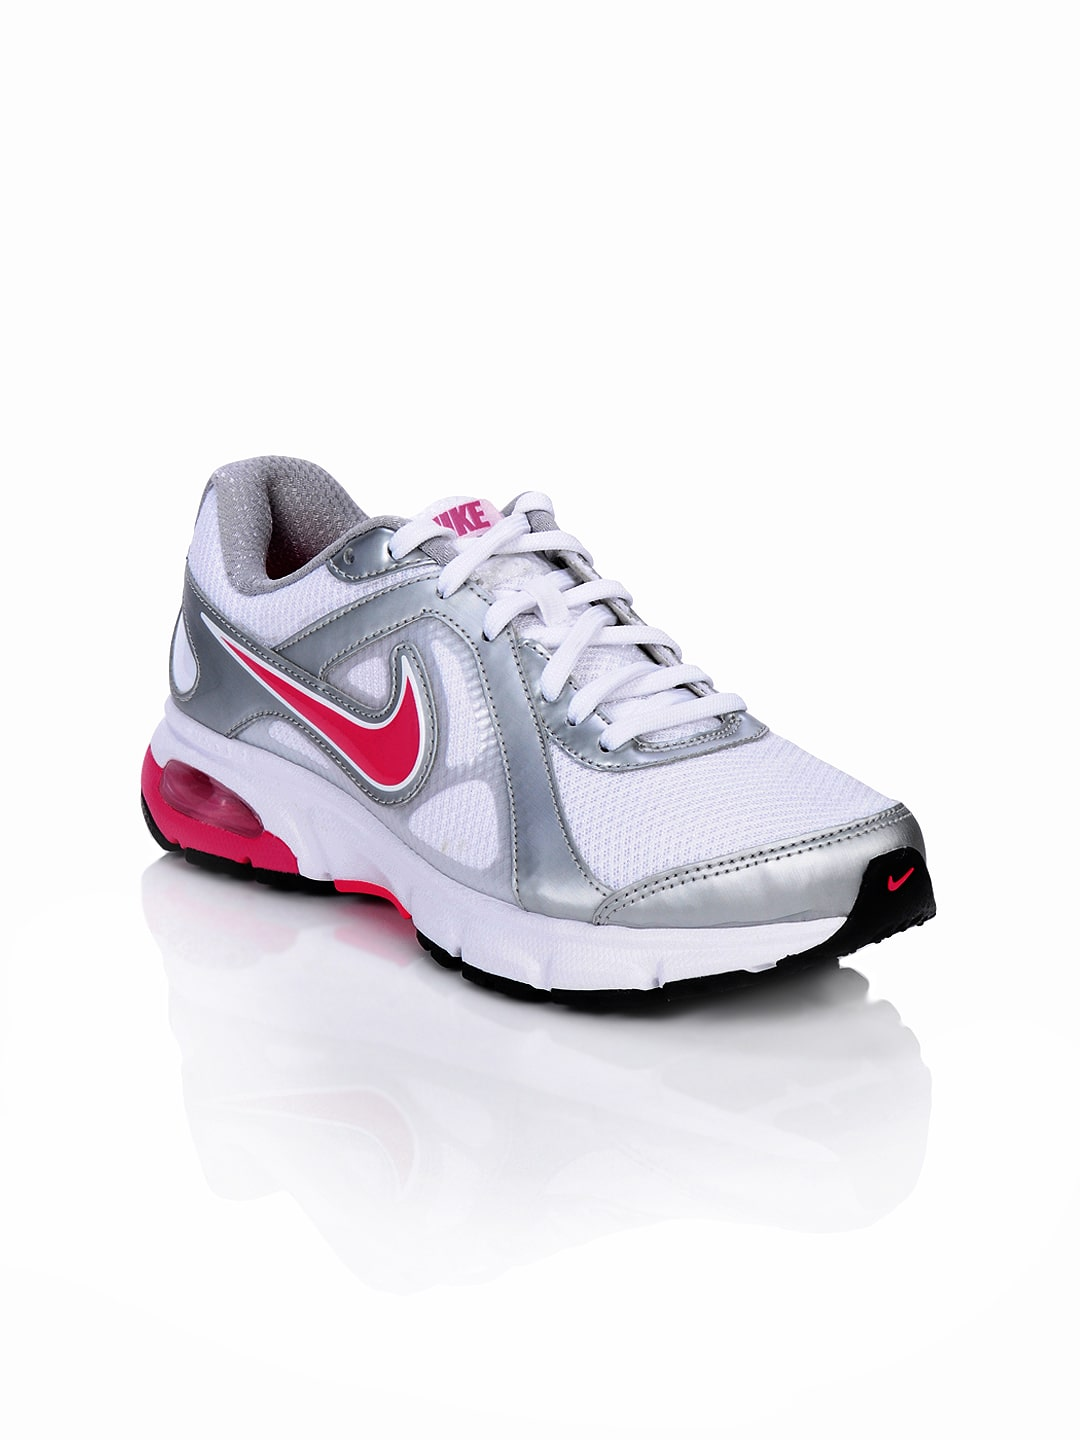 2252640fe282 Nike 488169-100 Women Air Dictate 2 Msl White Sports Shoes - Best ...